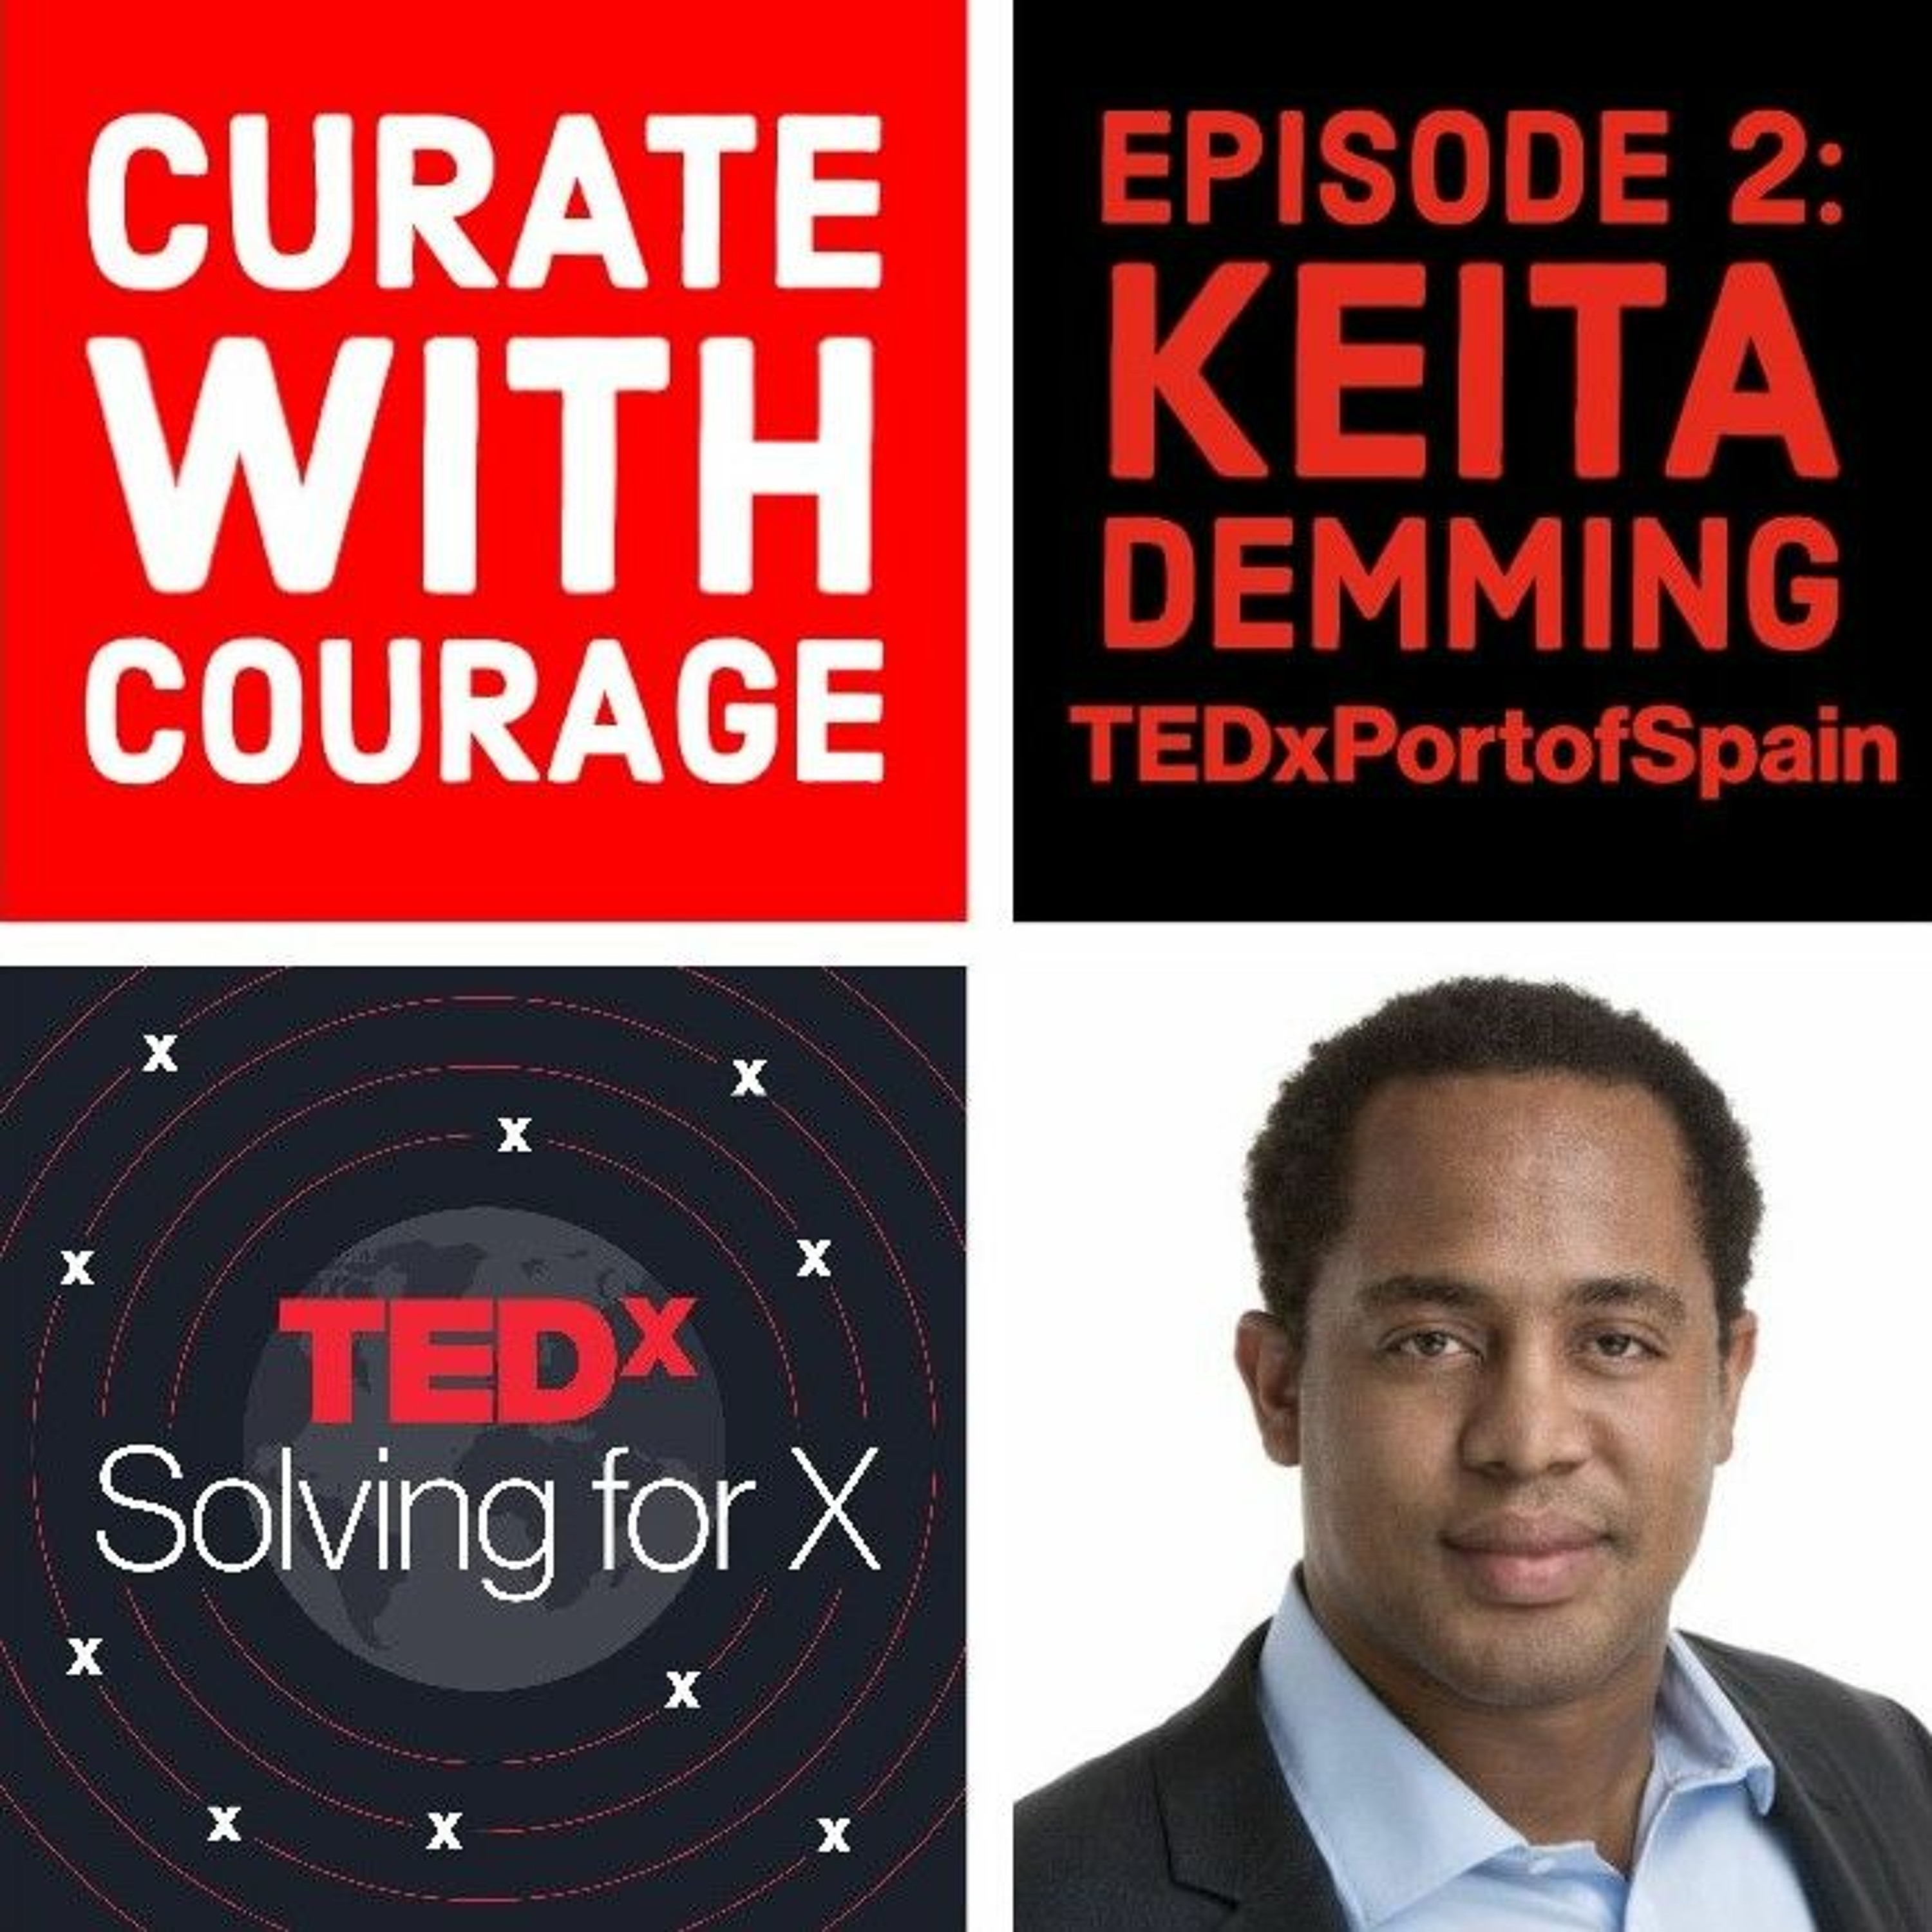 Curate with Courage — Keita Demming, TEDxPortofSpain